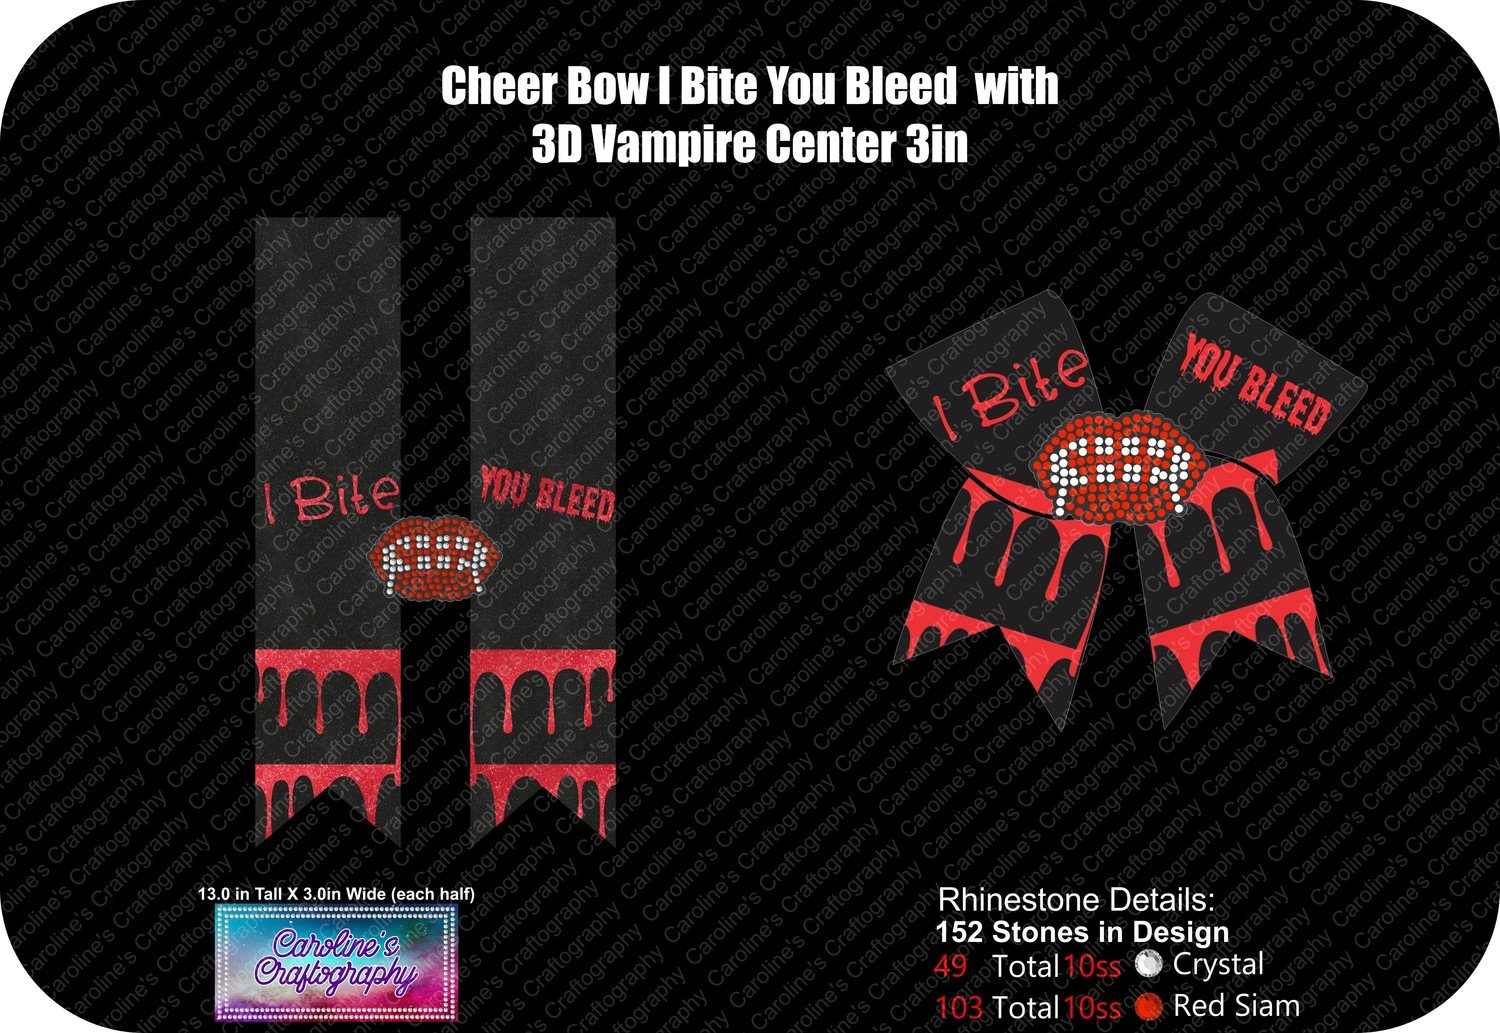 Cheer Bow Vampire 3D Center 3in Stone Vinyl